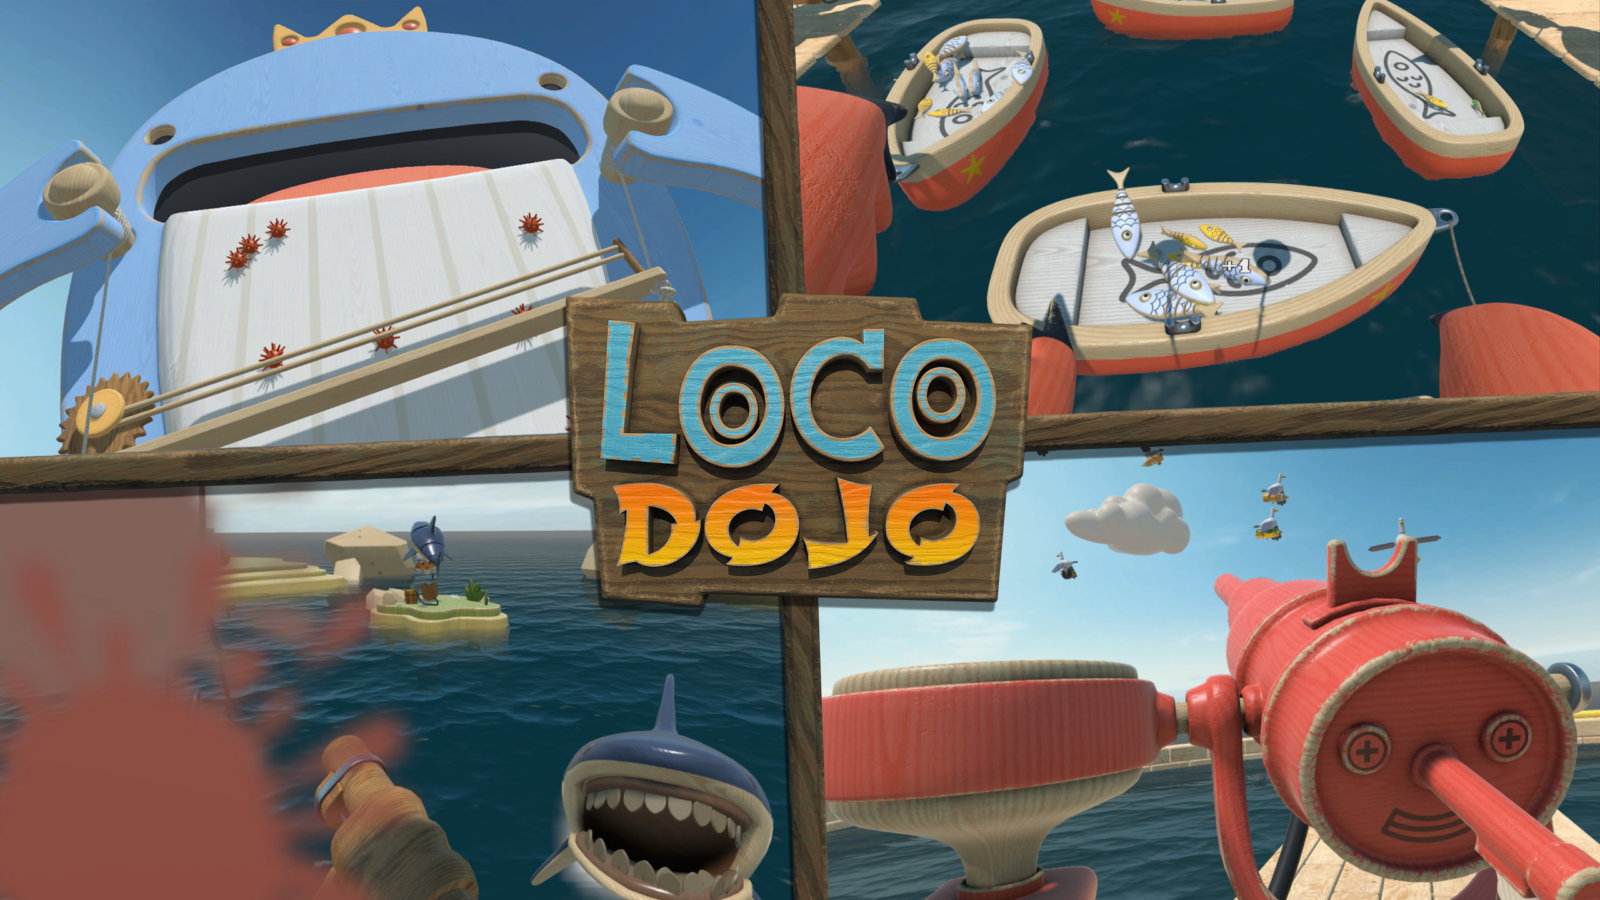 4_LocoDojoScreenshot_Seaside